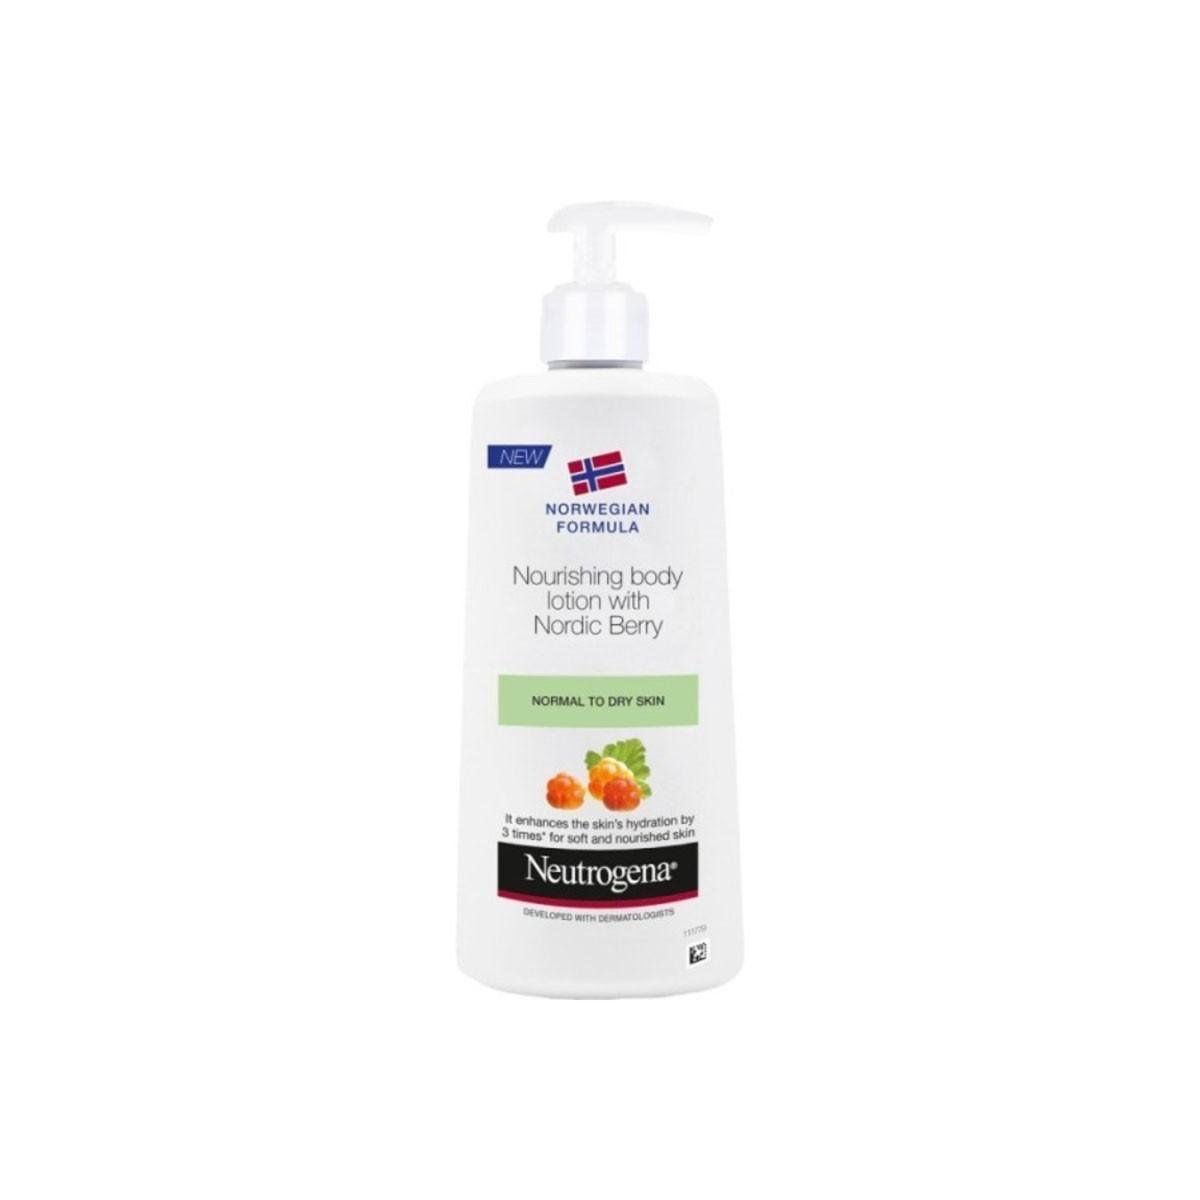 Neutrogena fragrances Nourishing Body Lotion 250ml